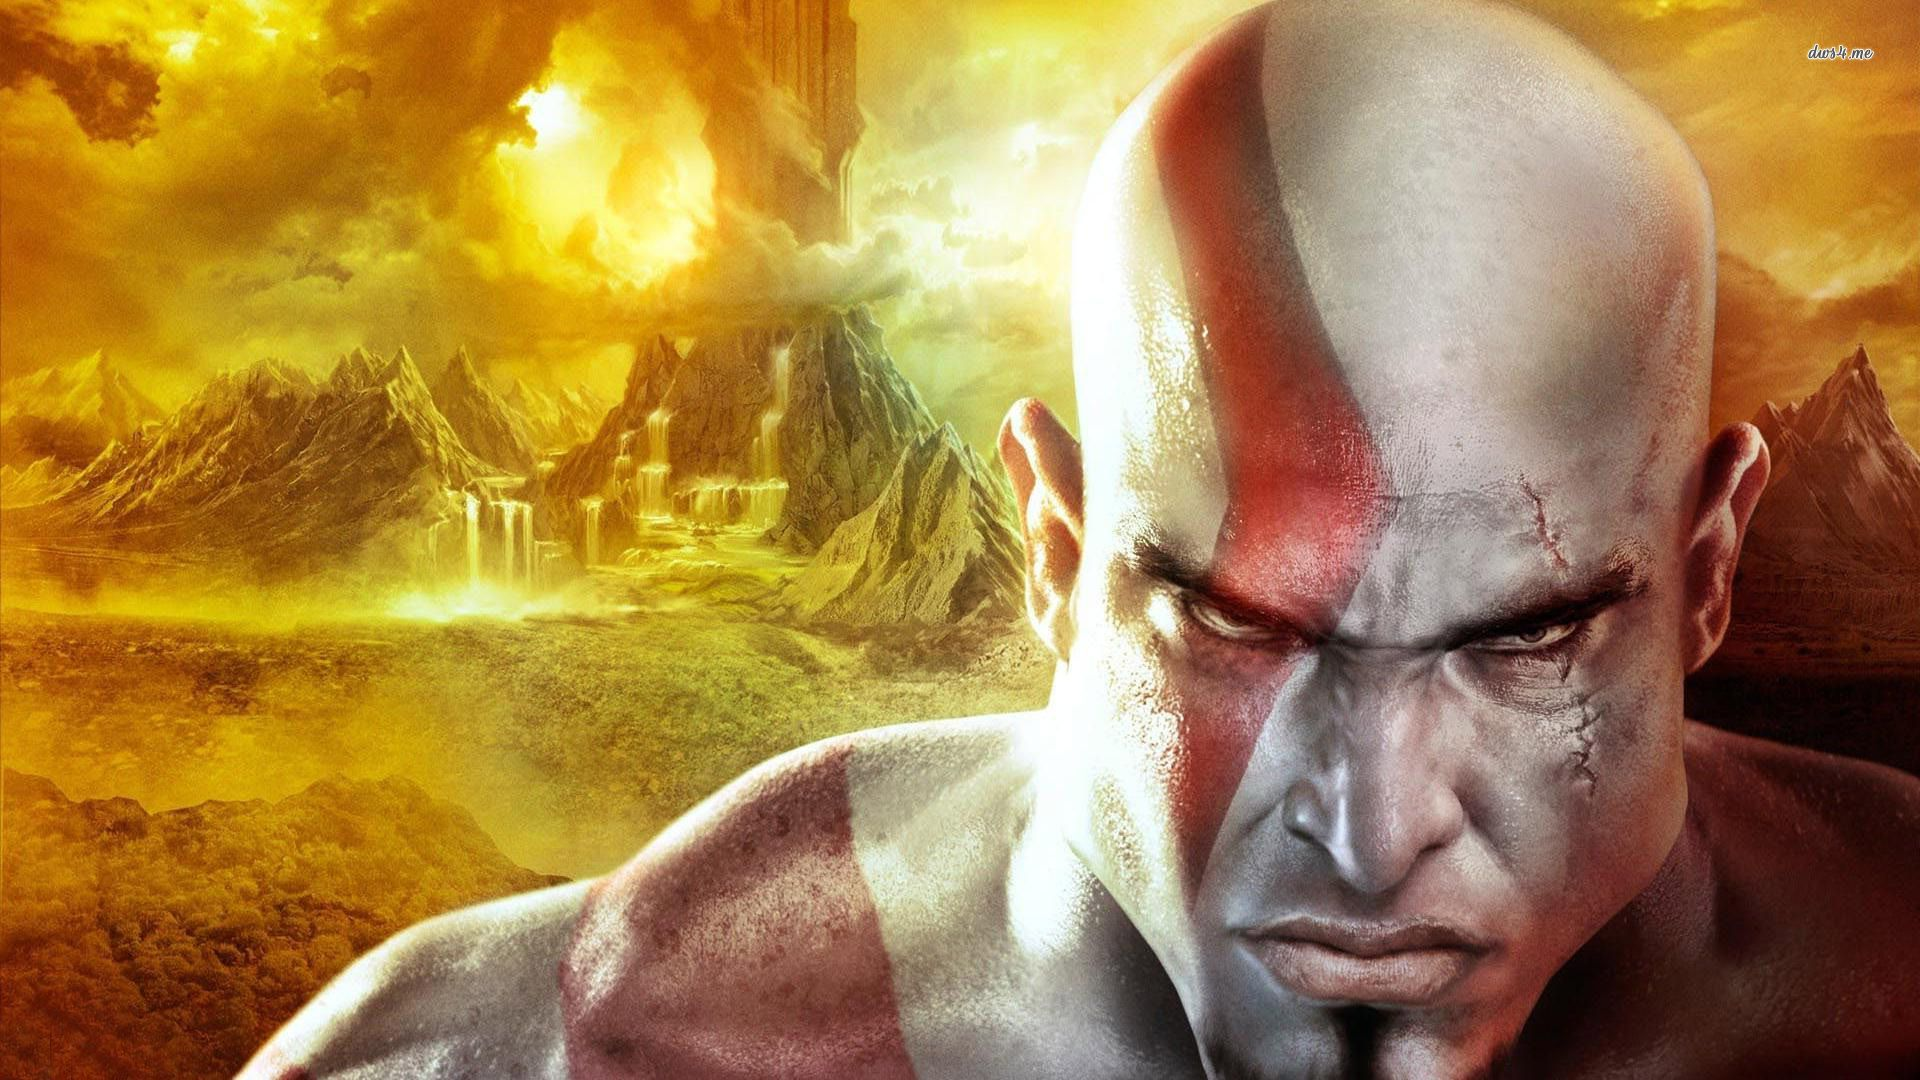 God Of War III HD desktop wallpaper Widescreen High Definition